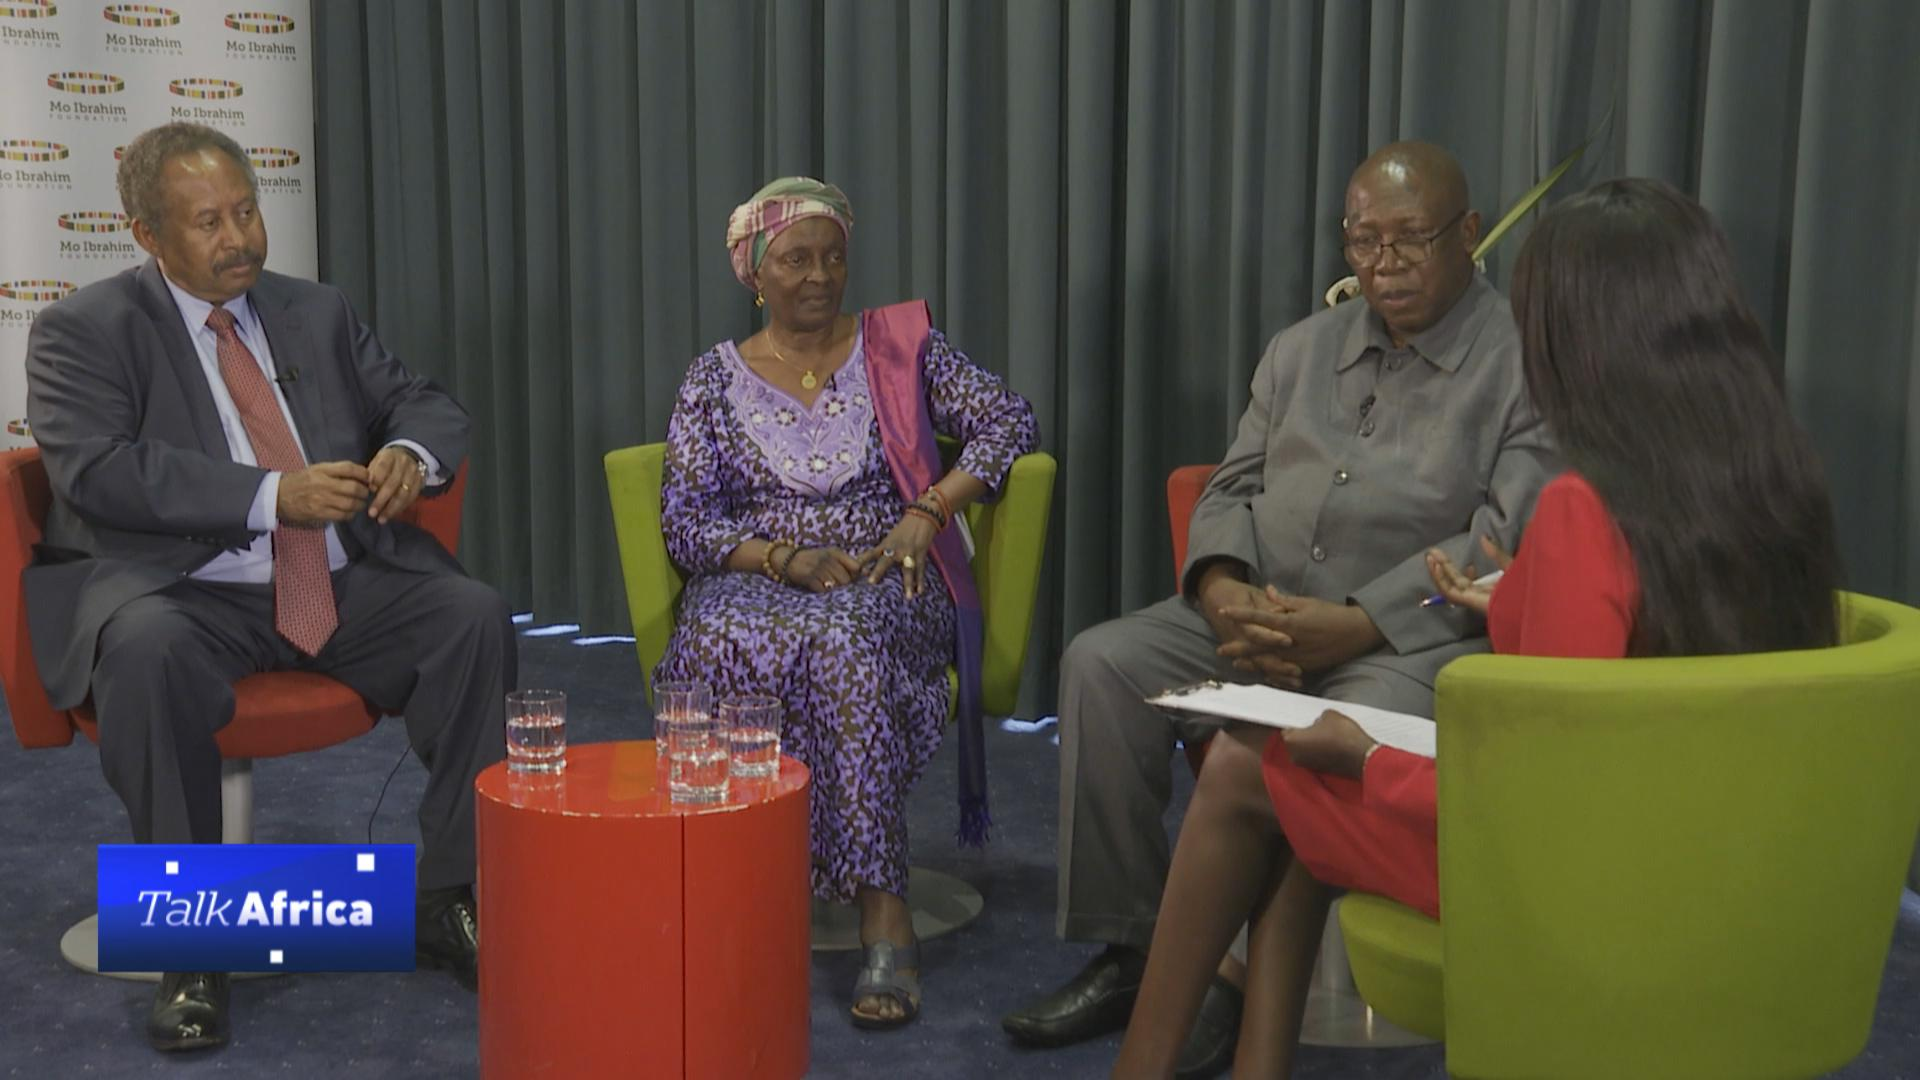 Talk Africa: Youth and Migration in Africa